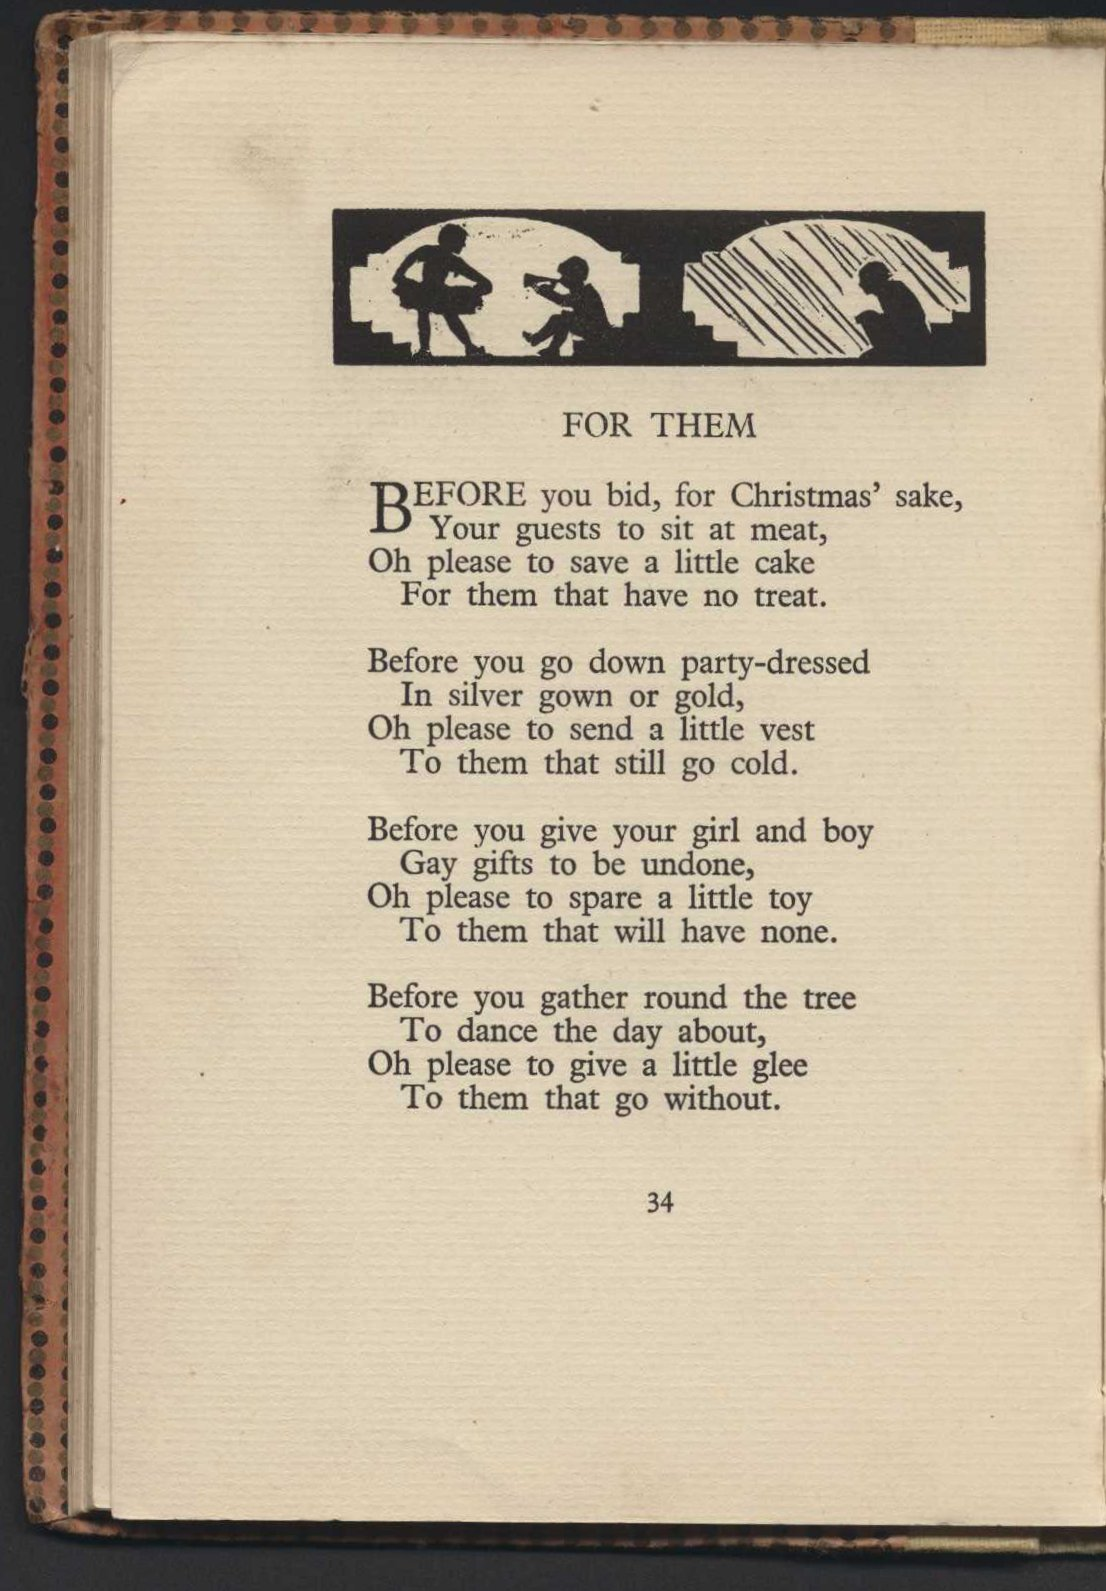 Eleanor Farjeon. Come Christmas. Illustrations by Molly McArthur.  London: W. Collins Sons & Co., Ltd., 1927.